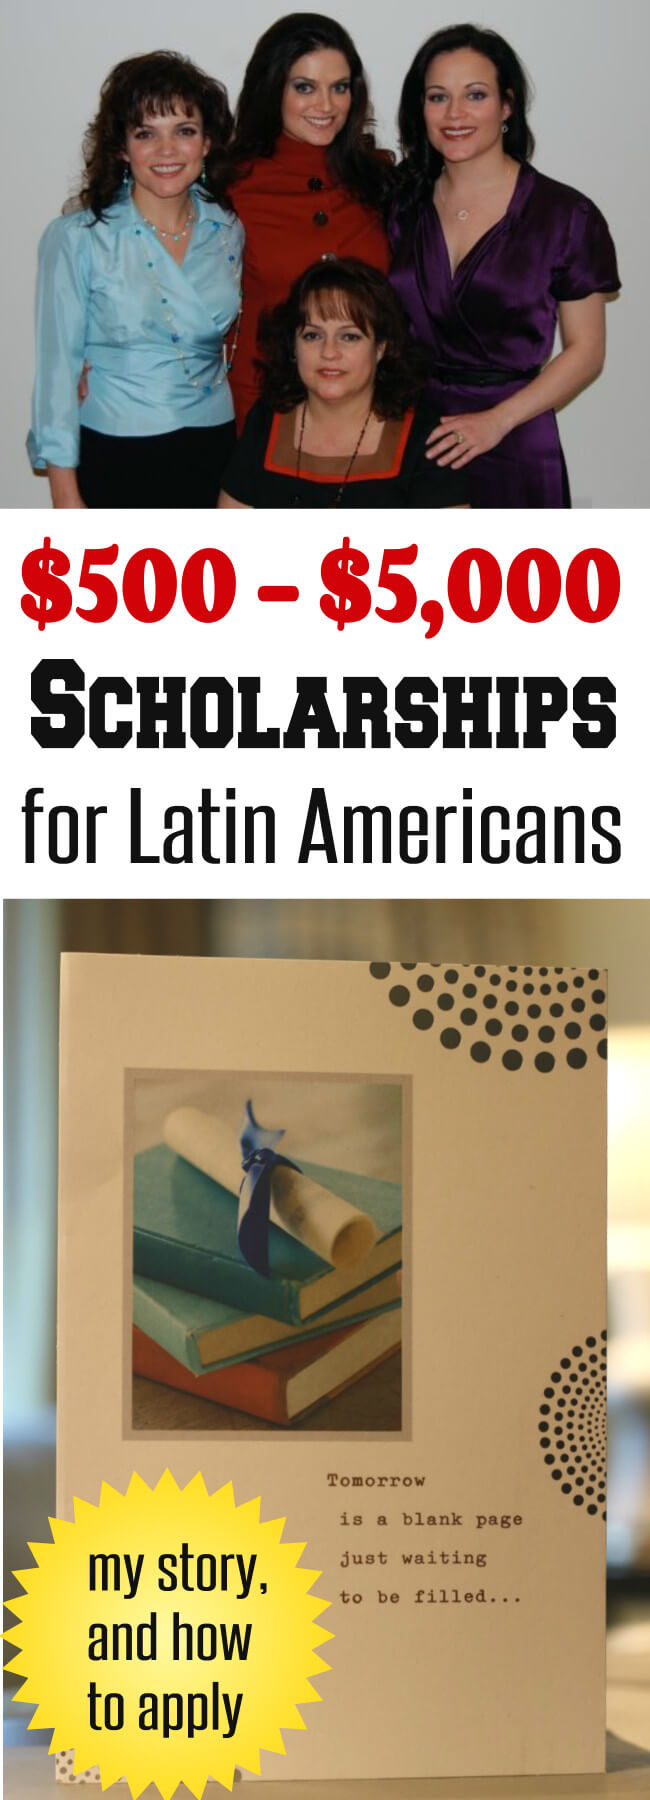 The Hispanic Scholarship Fund offers Latin Americans $500 to $5000 in scholarships every year - here I share my story and how to apply